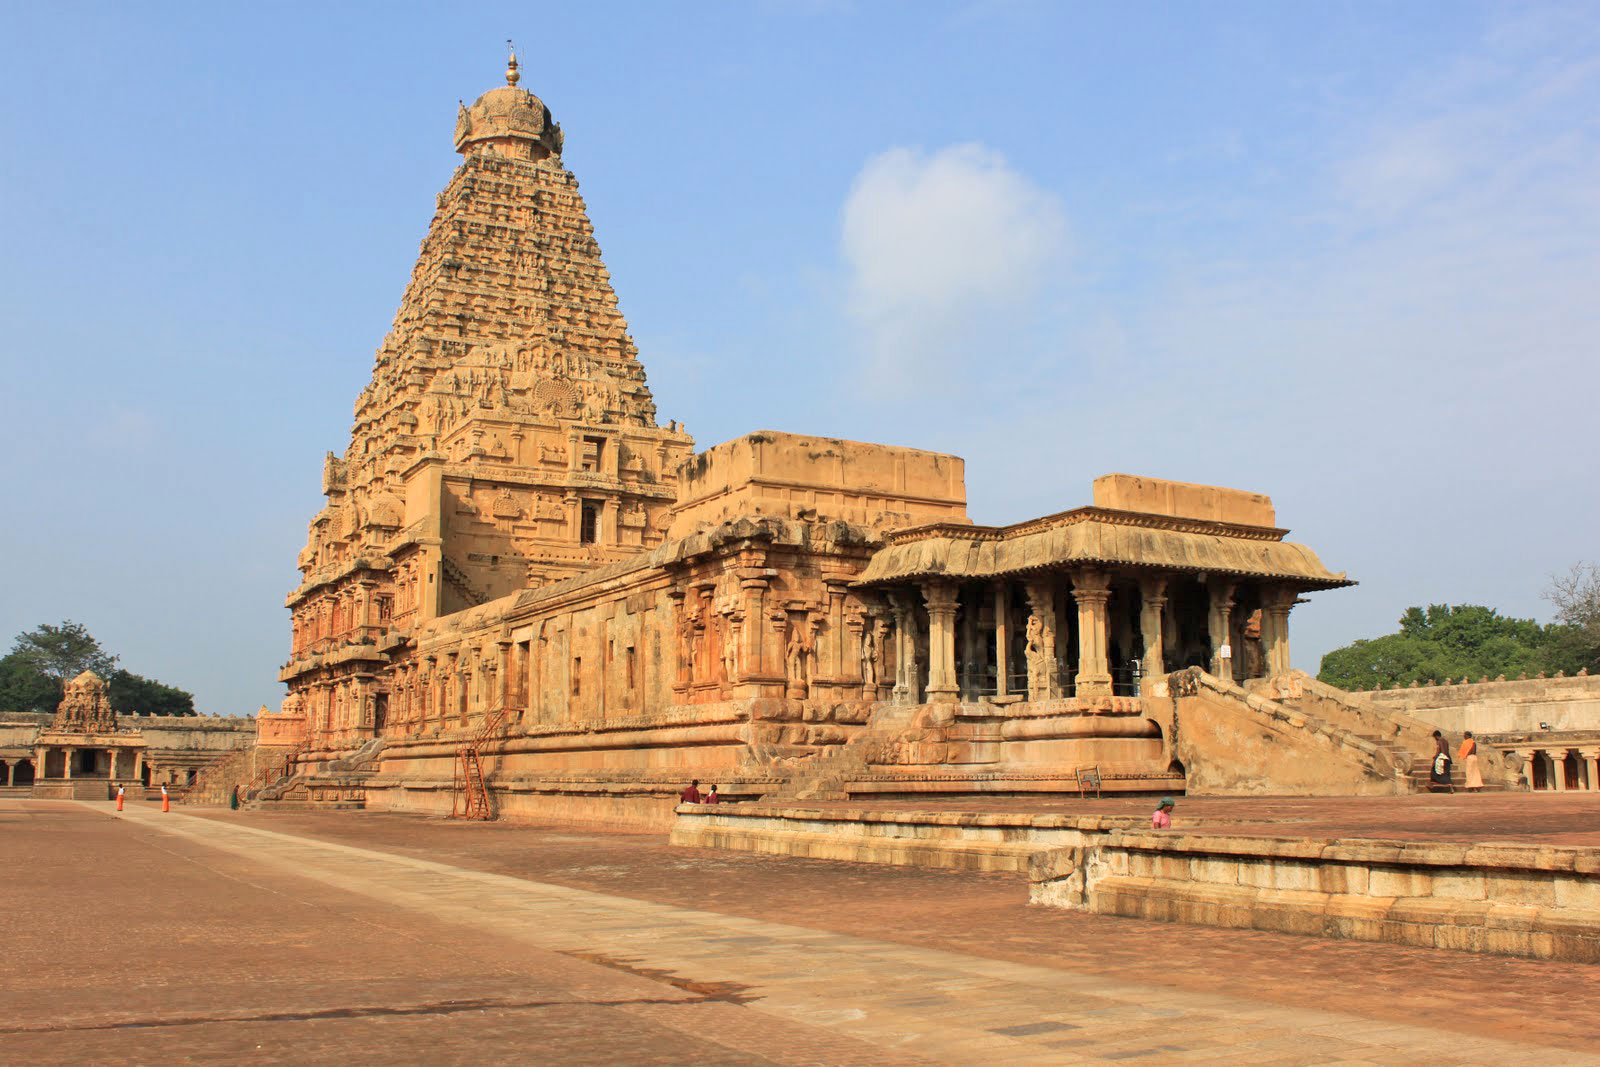 thanjavur dating The brihadeshwara temple at thanjavur in the indian state of tamil nadu, is a hindu temple dedicated to shiva it is an important example of tamil architecture.